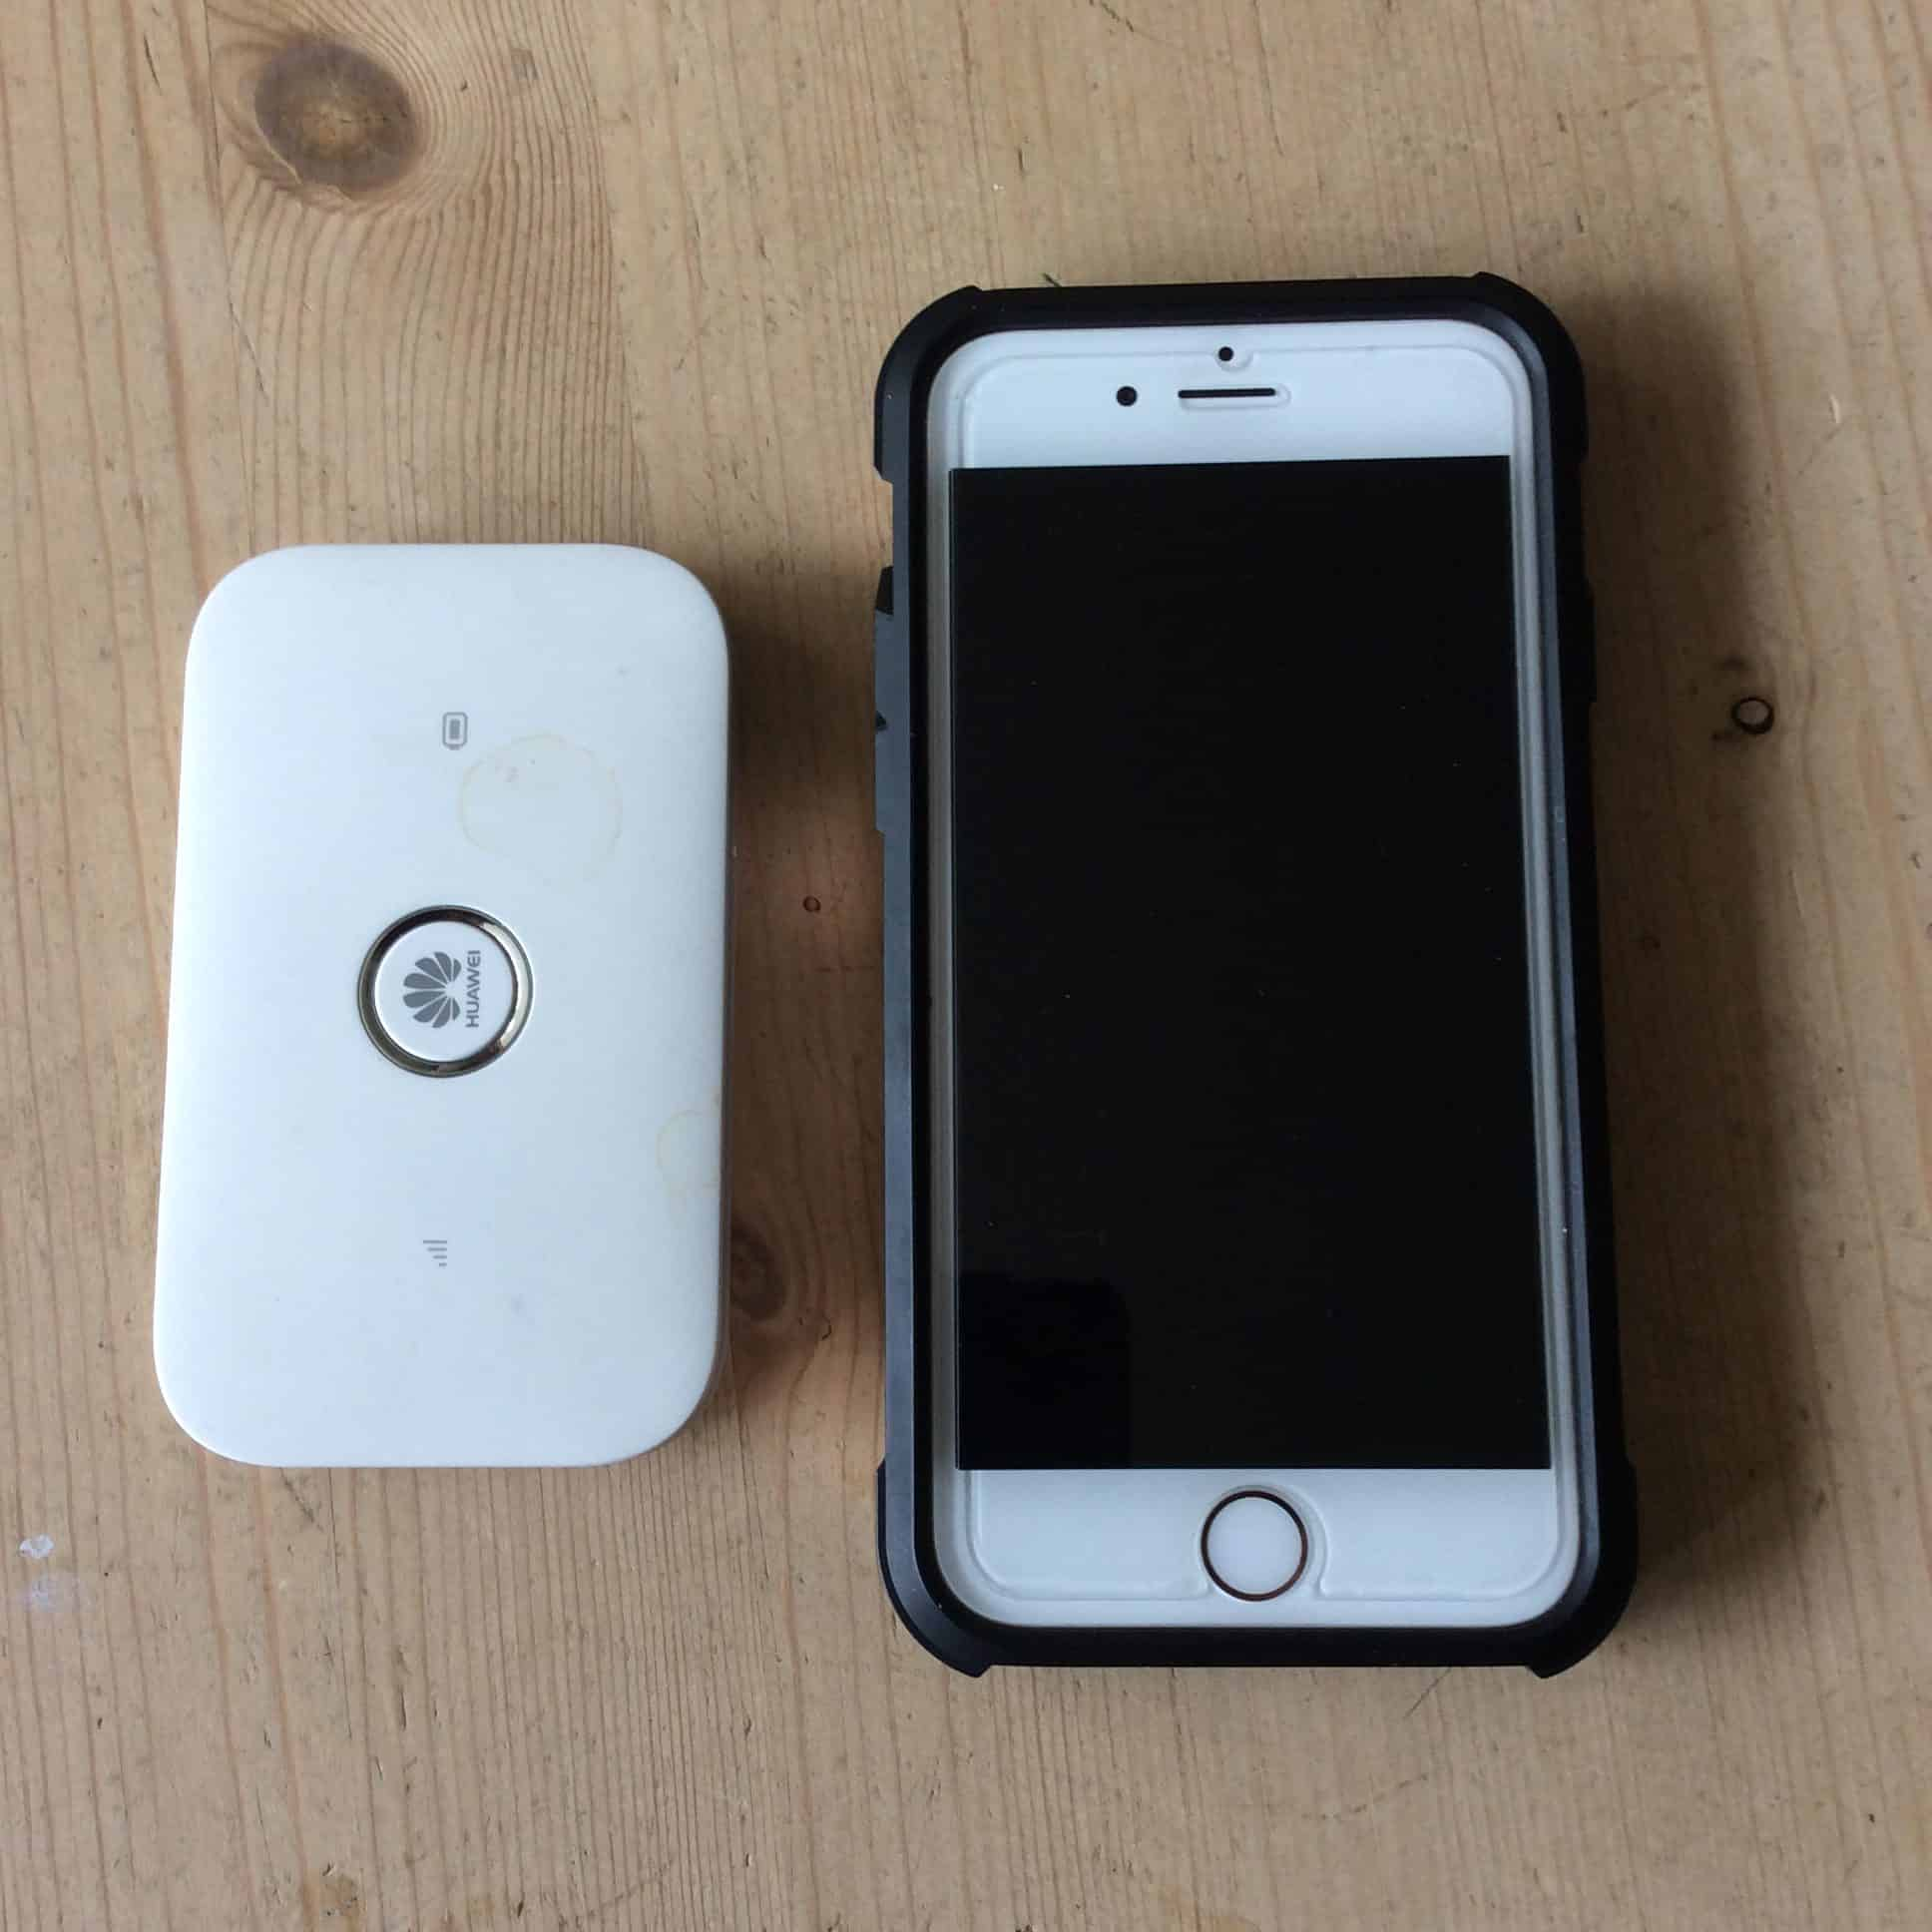 Review of Huawei MiFi from Three.co.uk